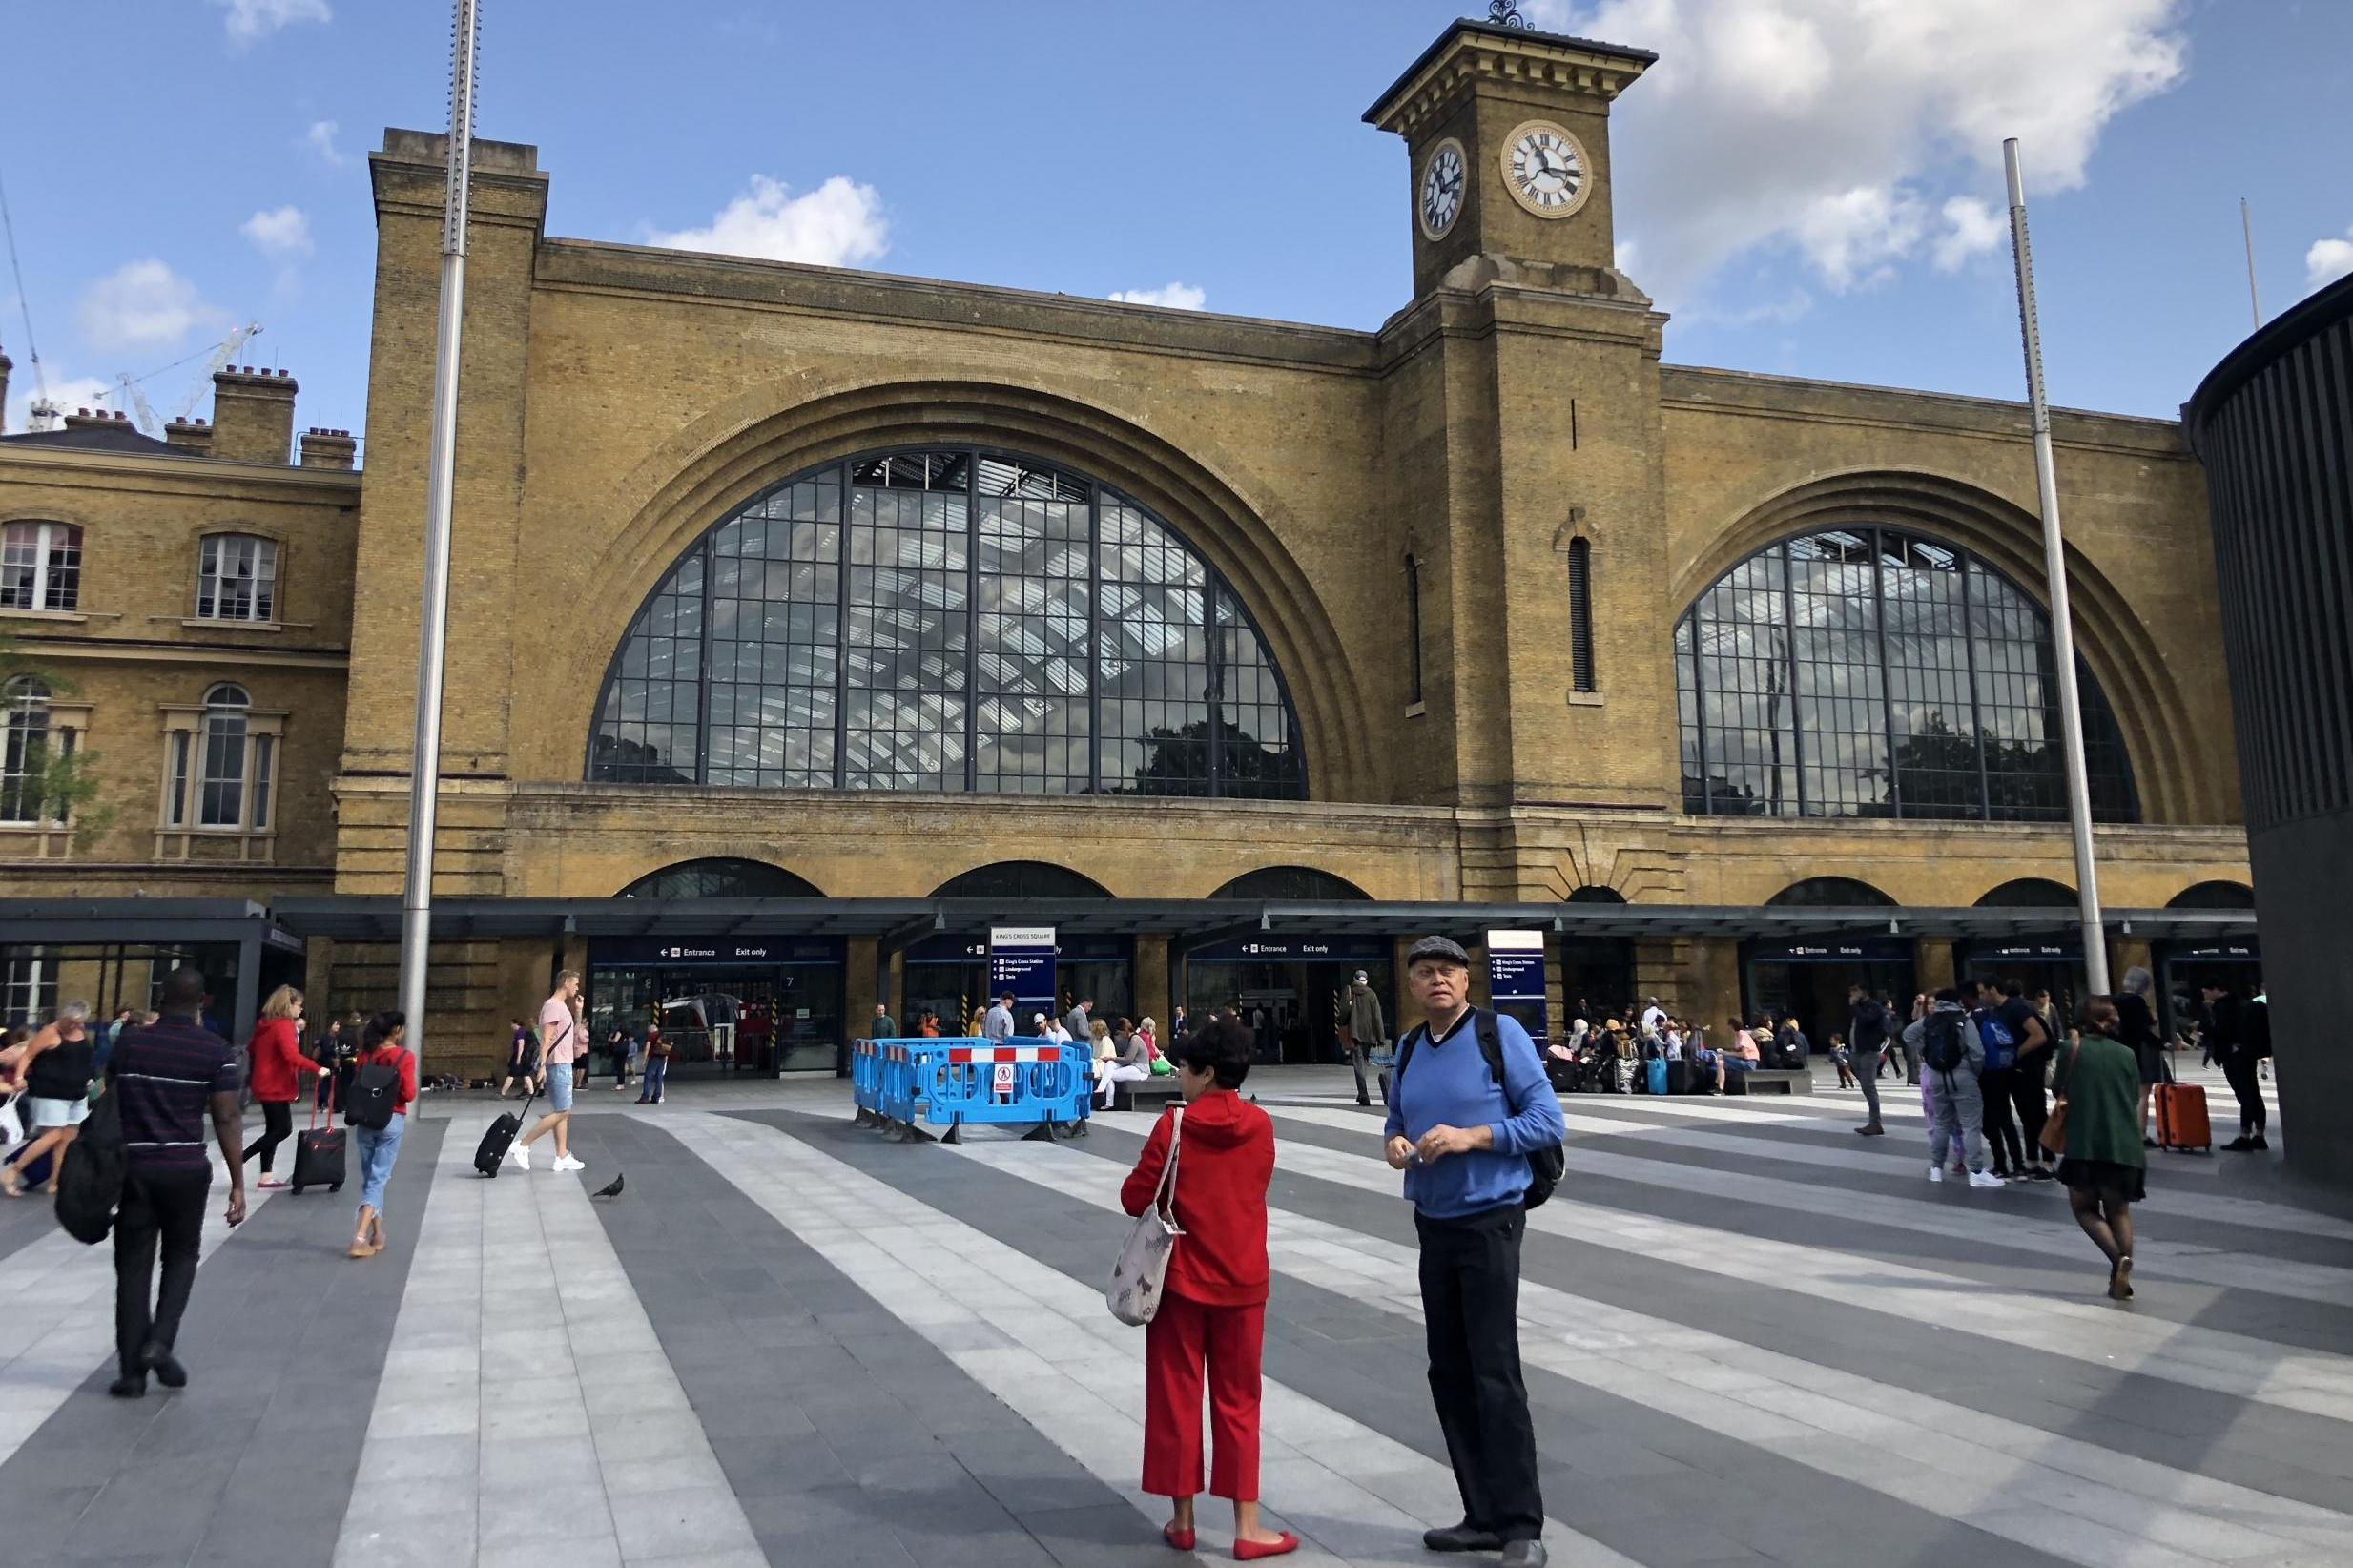 Kings Cross closed: Bank holiday closure of busy train station to cause severe disruption this weekend